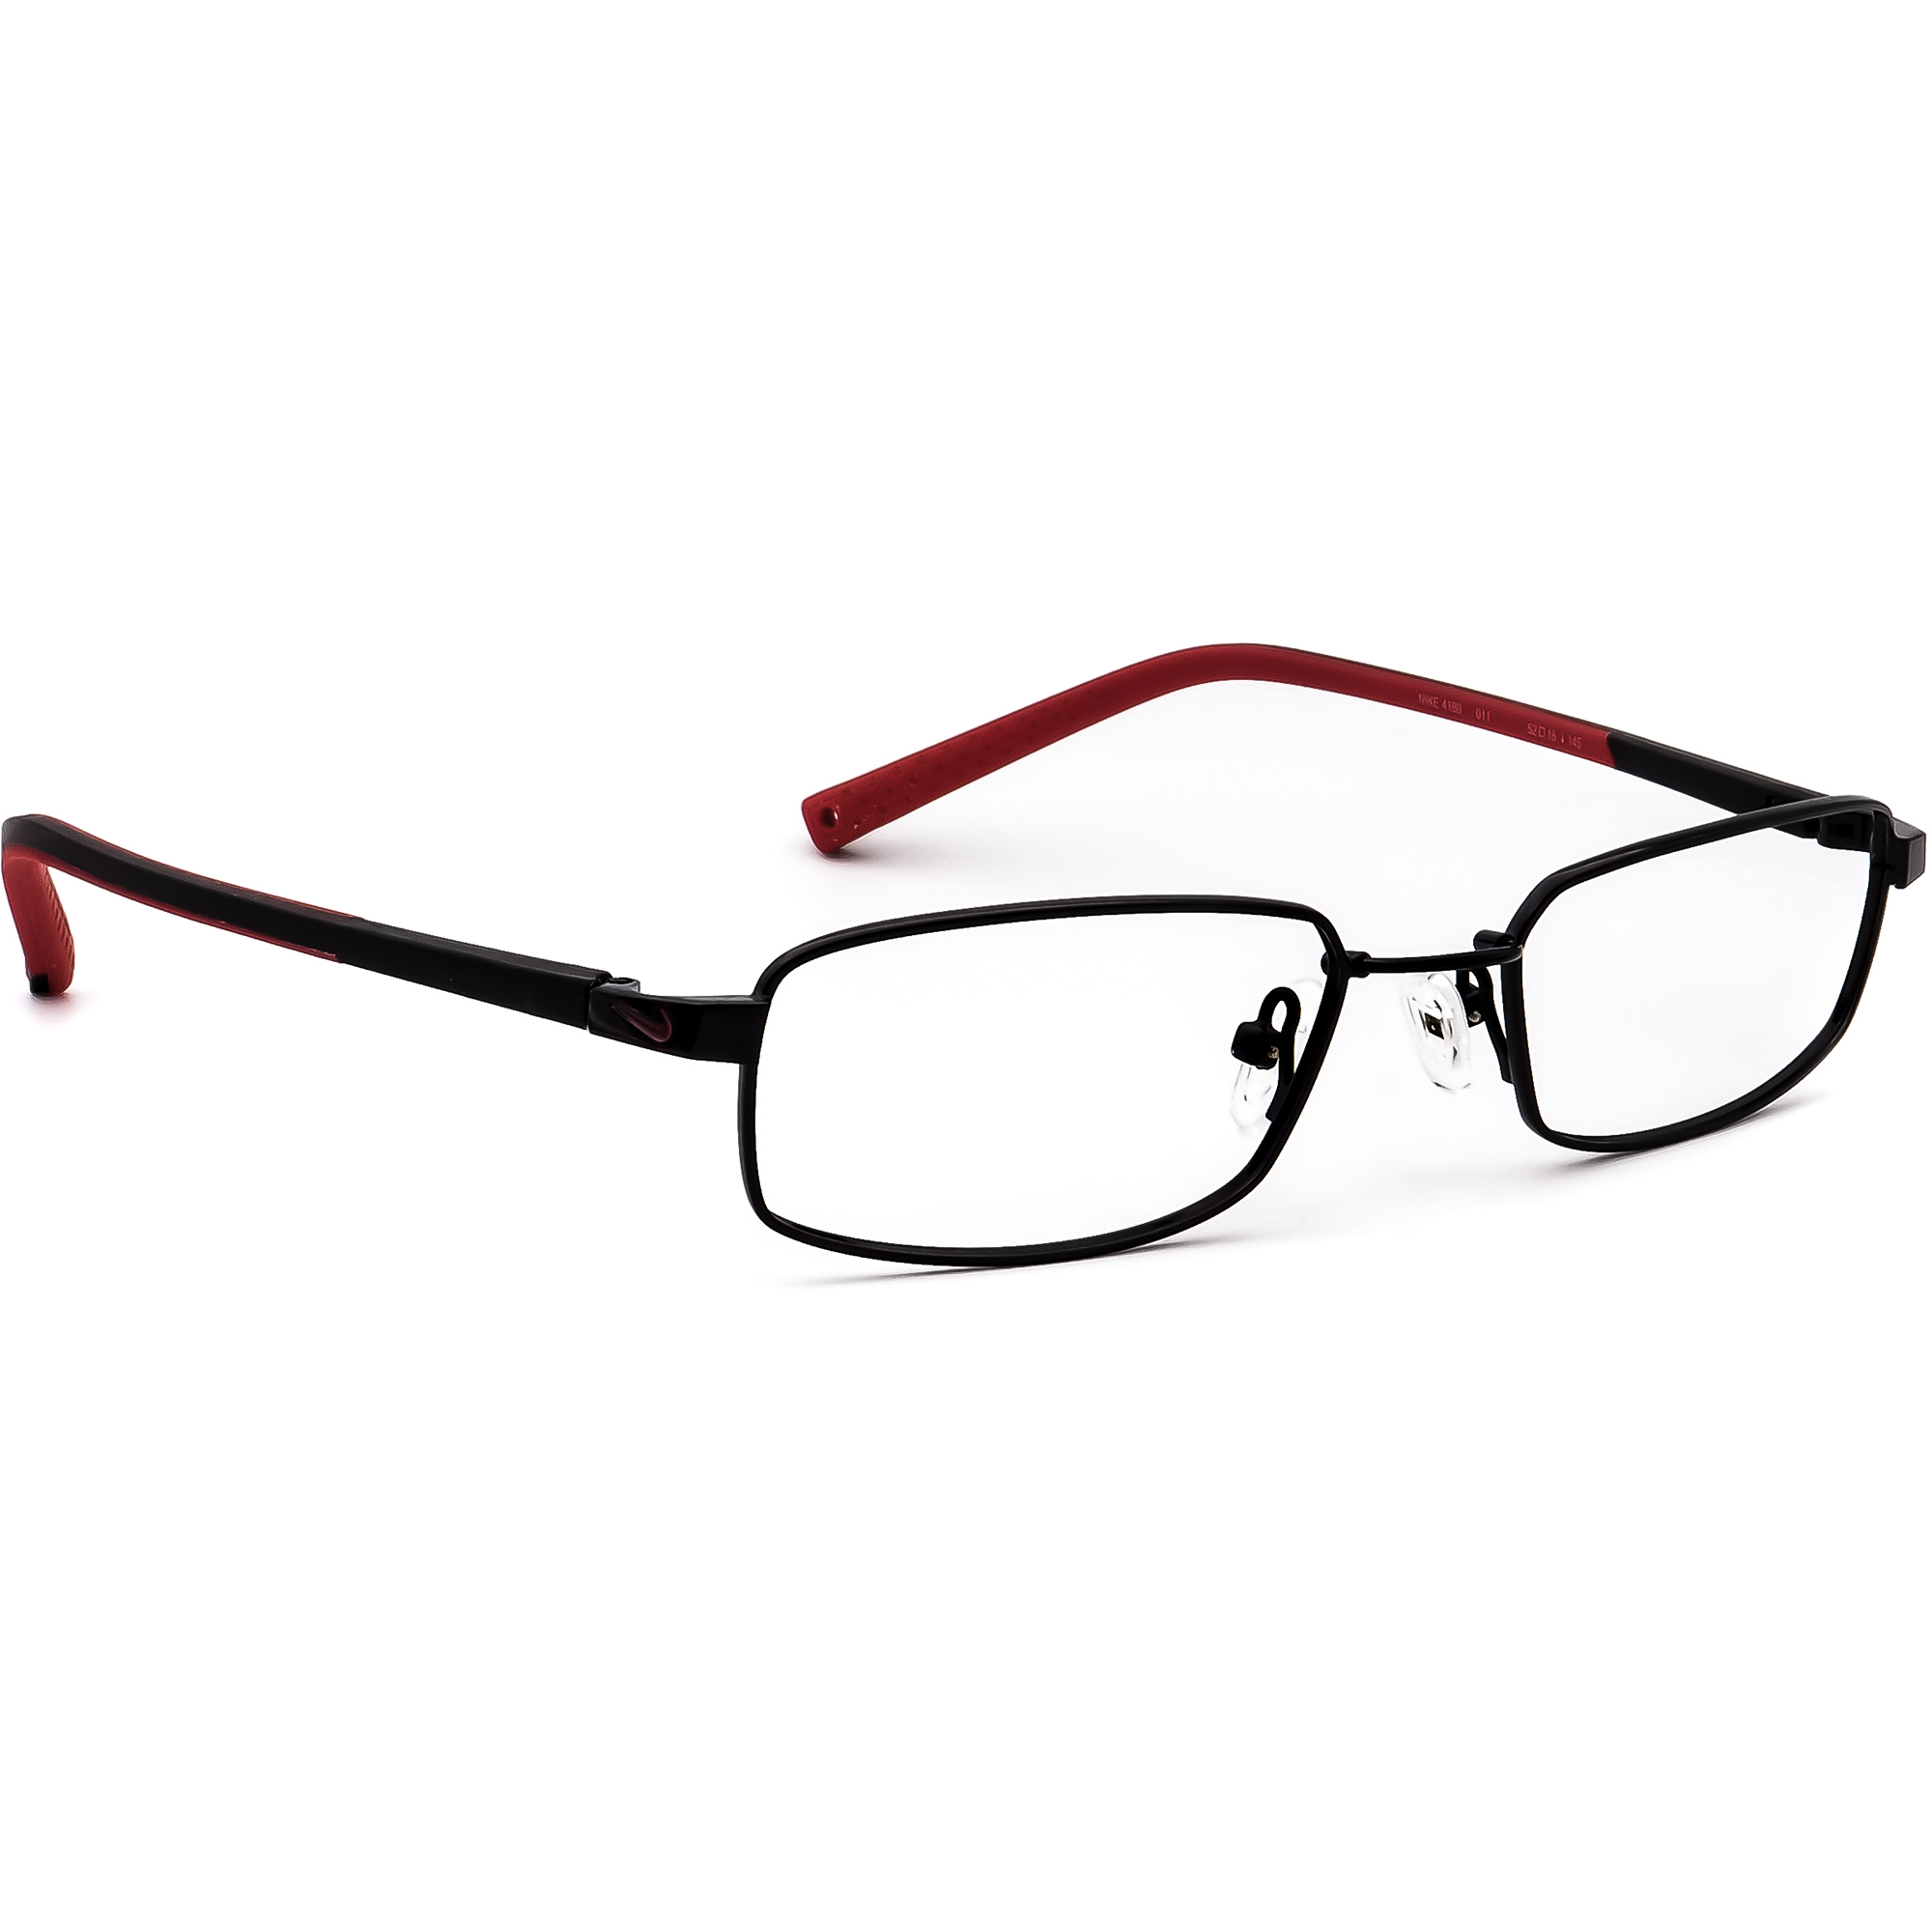 Nike 4180 011 Flexon Eyeglasses